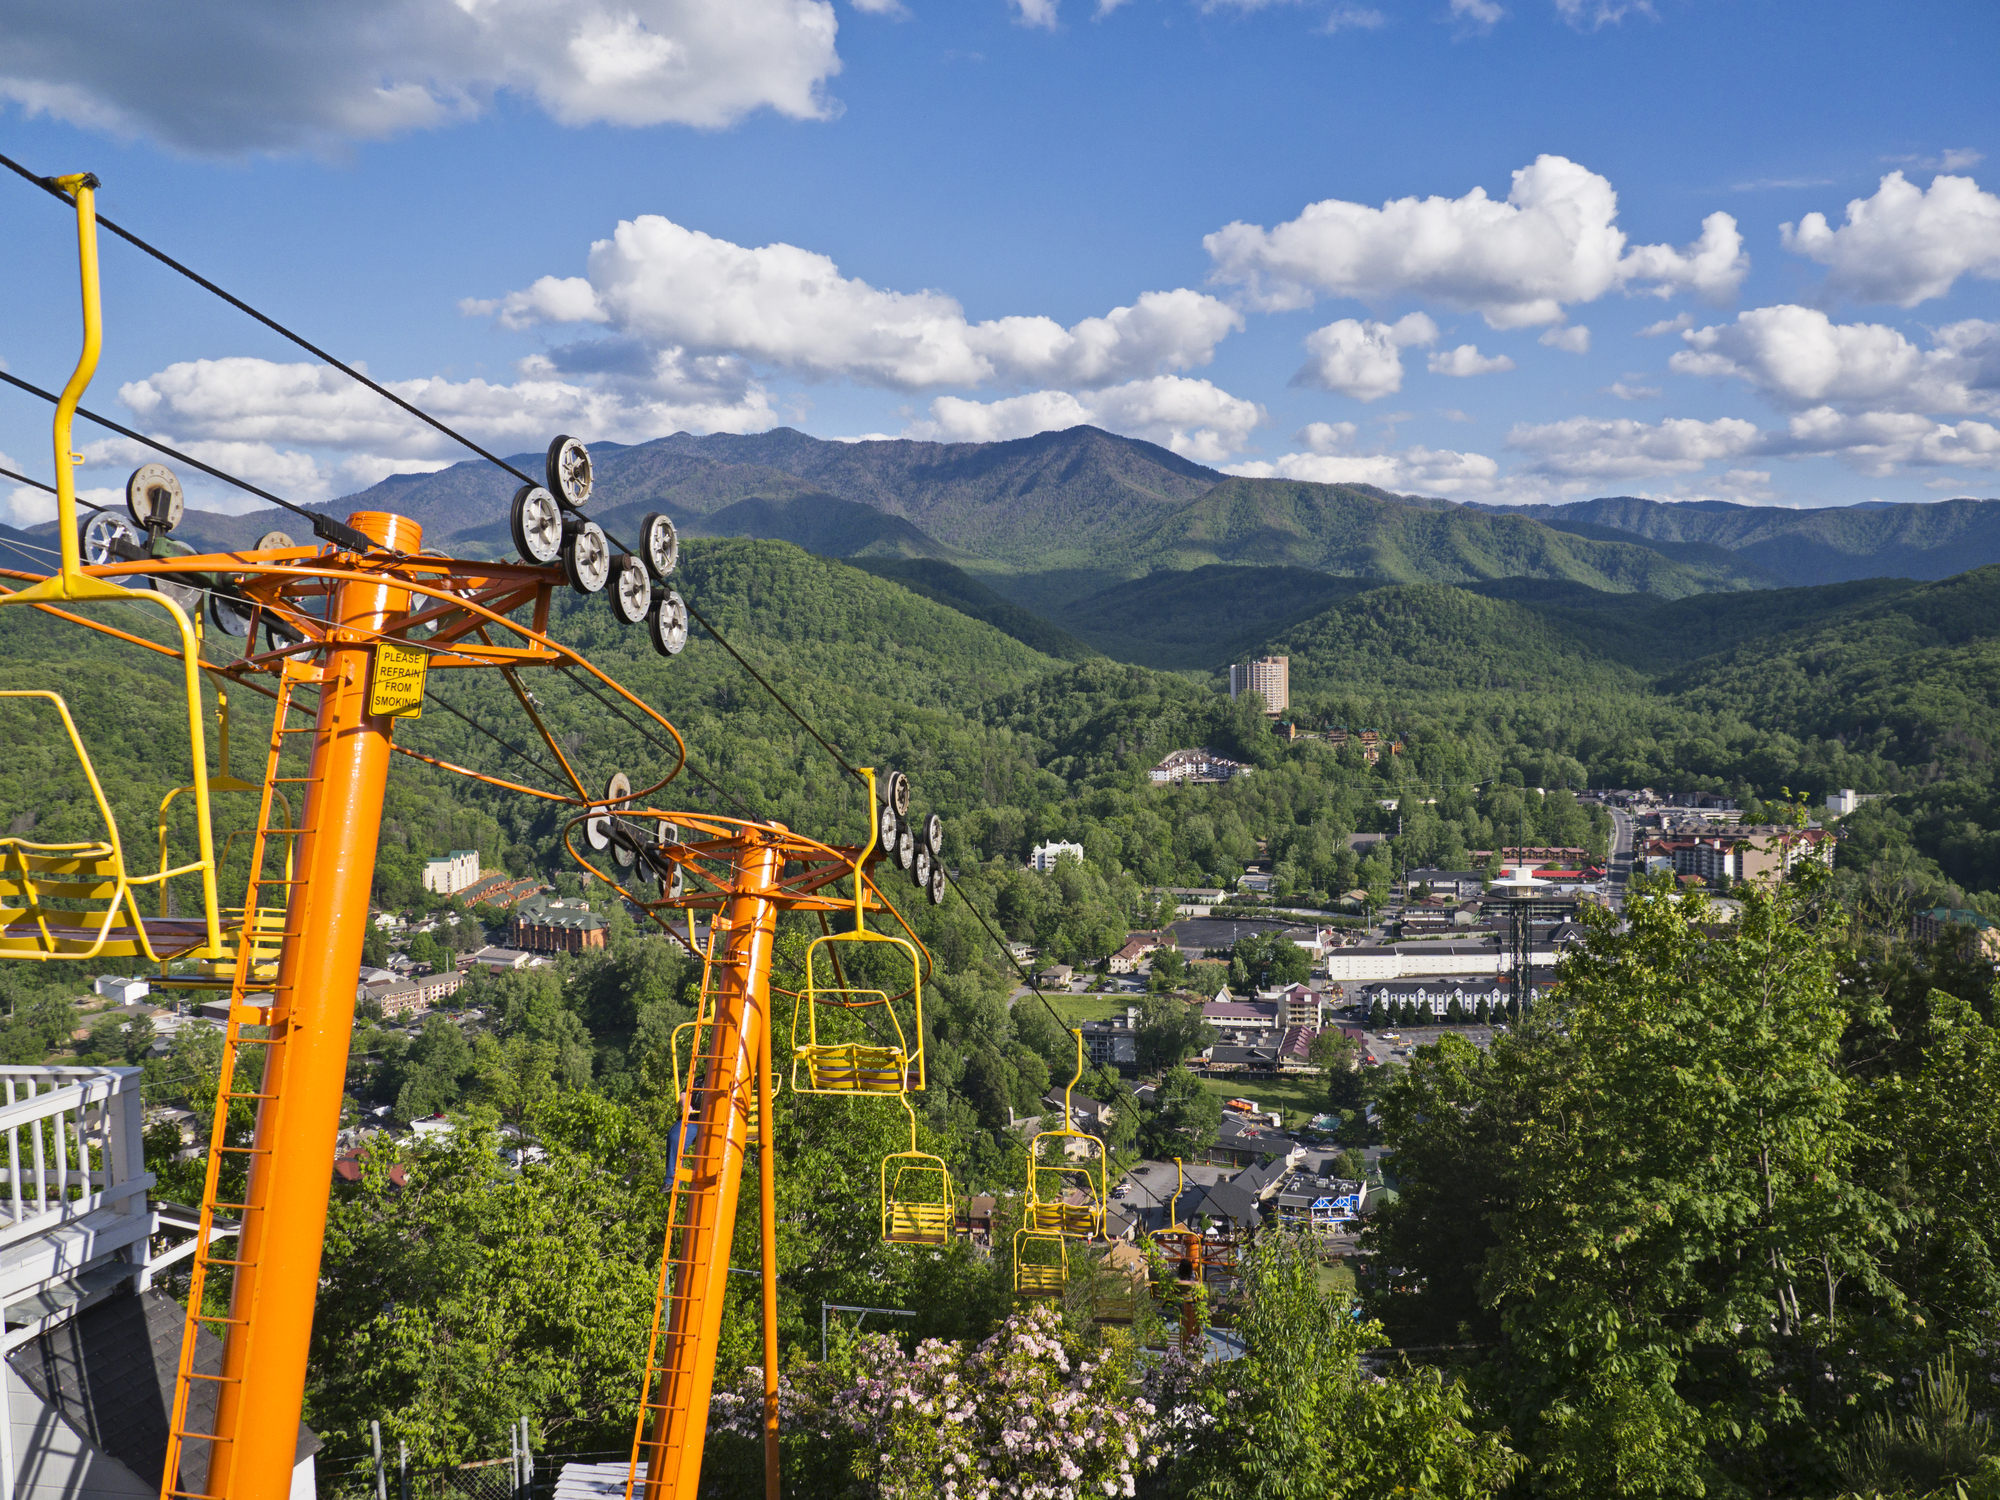 15 best small towns in tennessee nice small towns to for Best small towns in colorado to visit